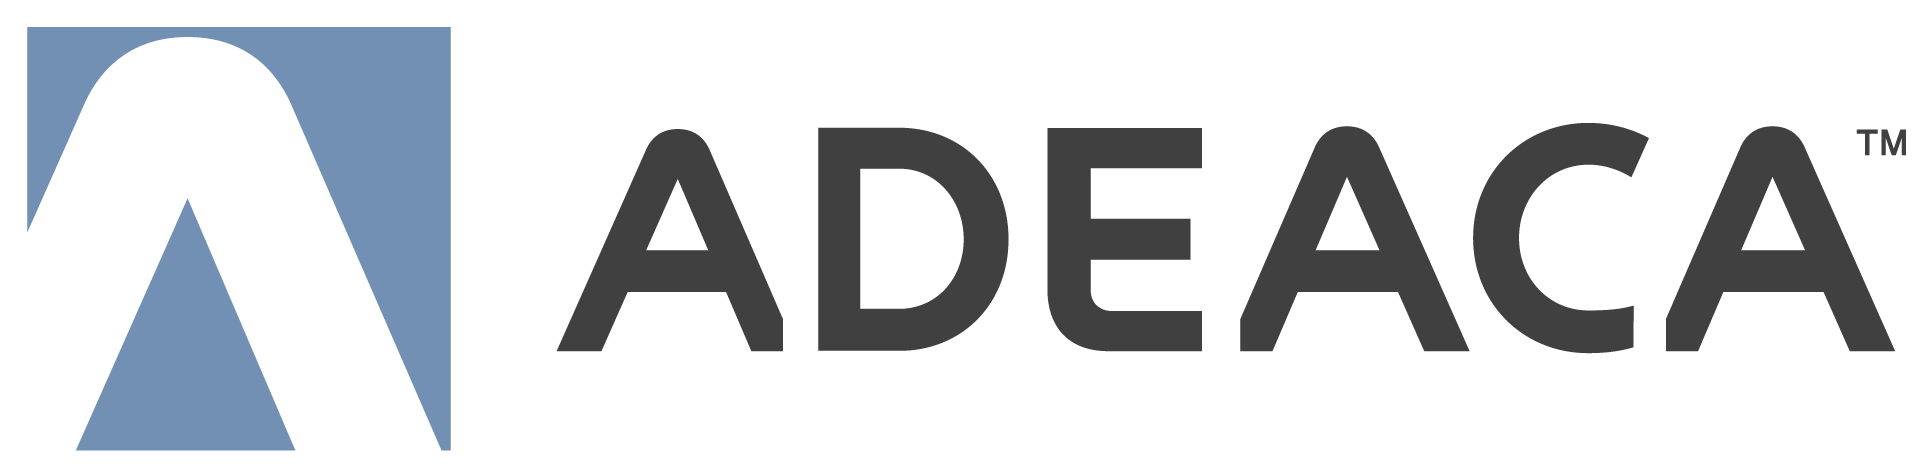 Modern Contractor Solutions Profiles Adeaca's Project Business Automation